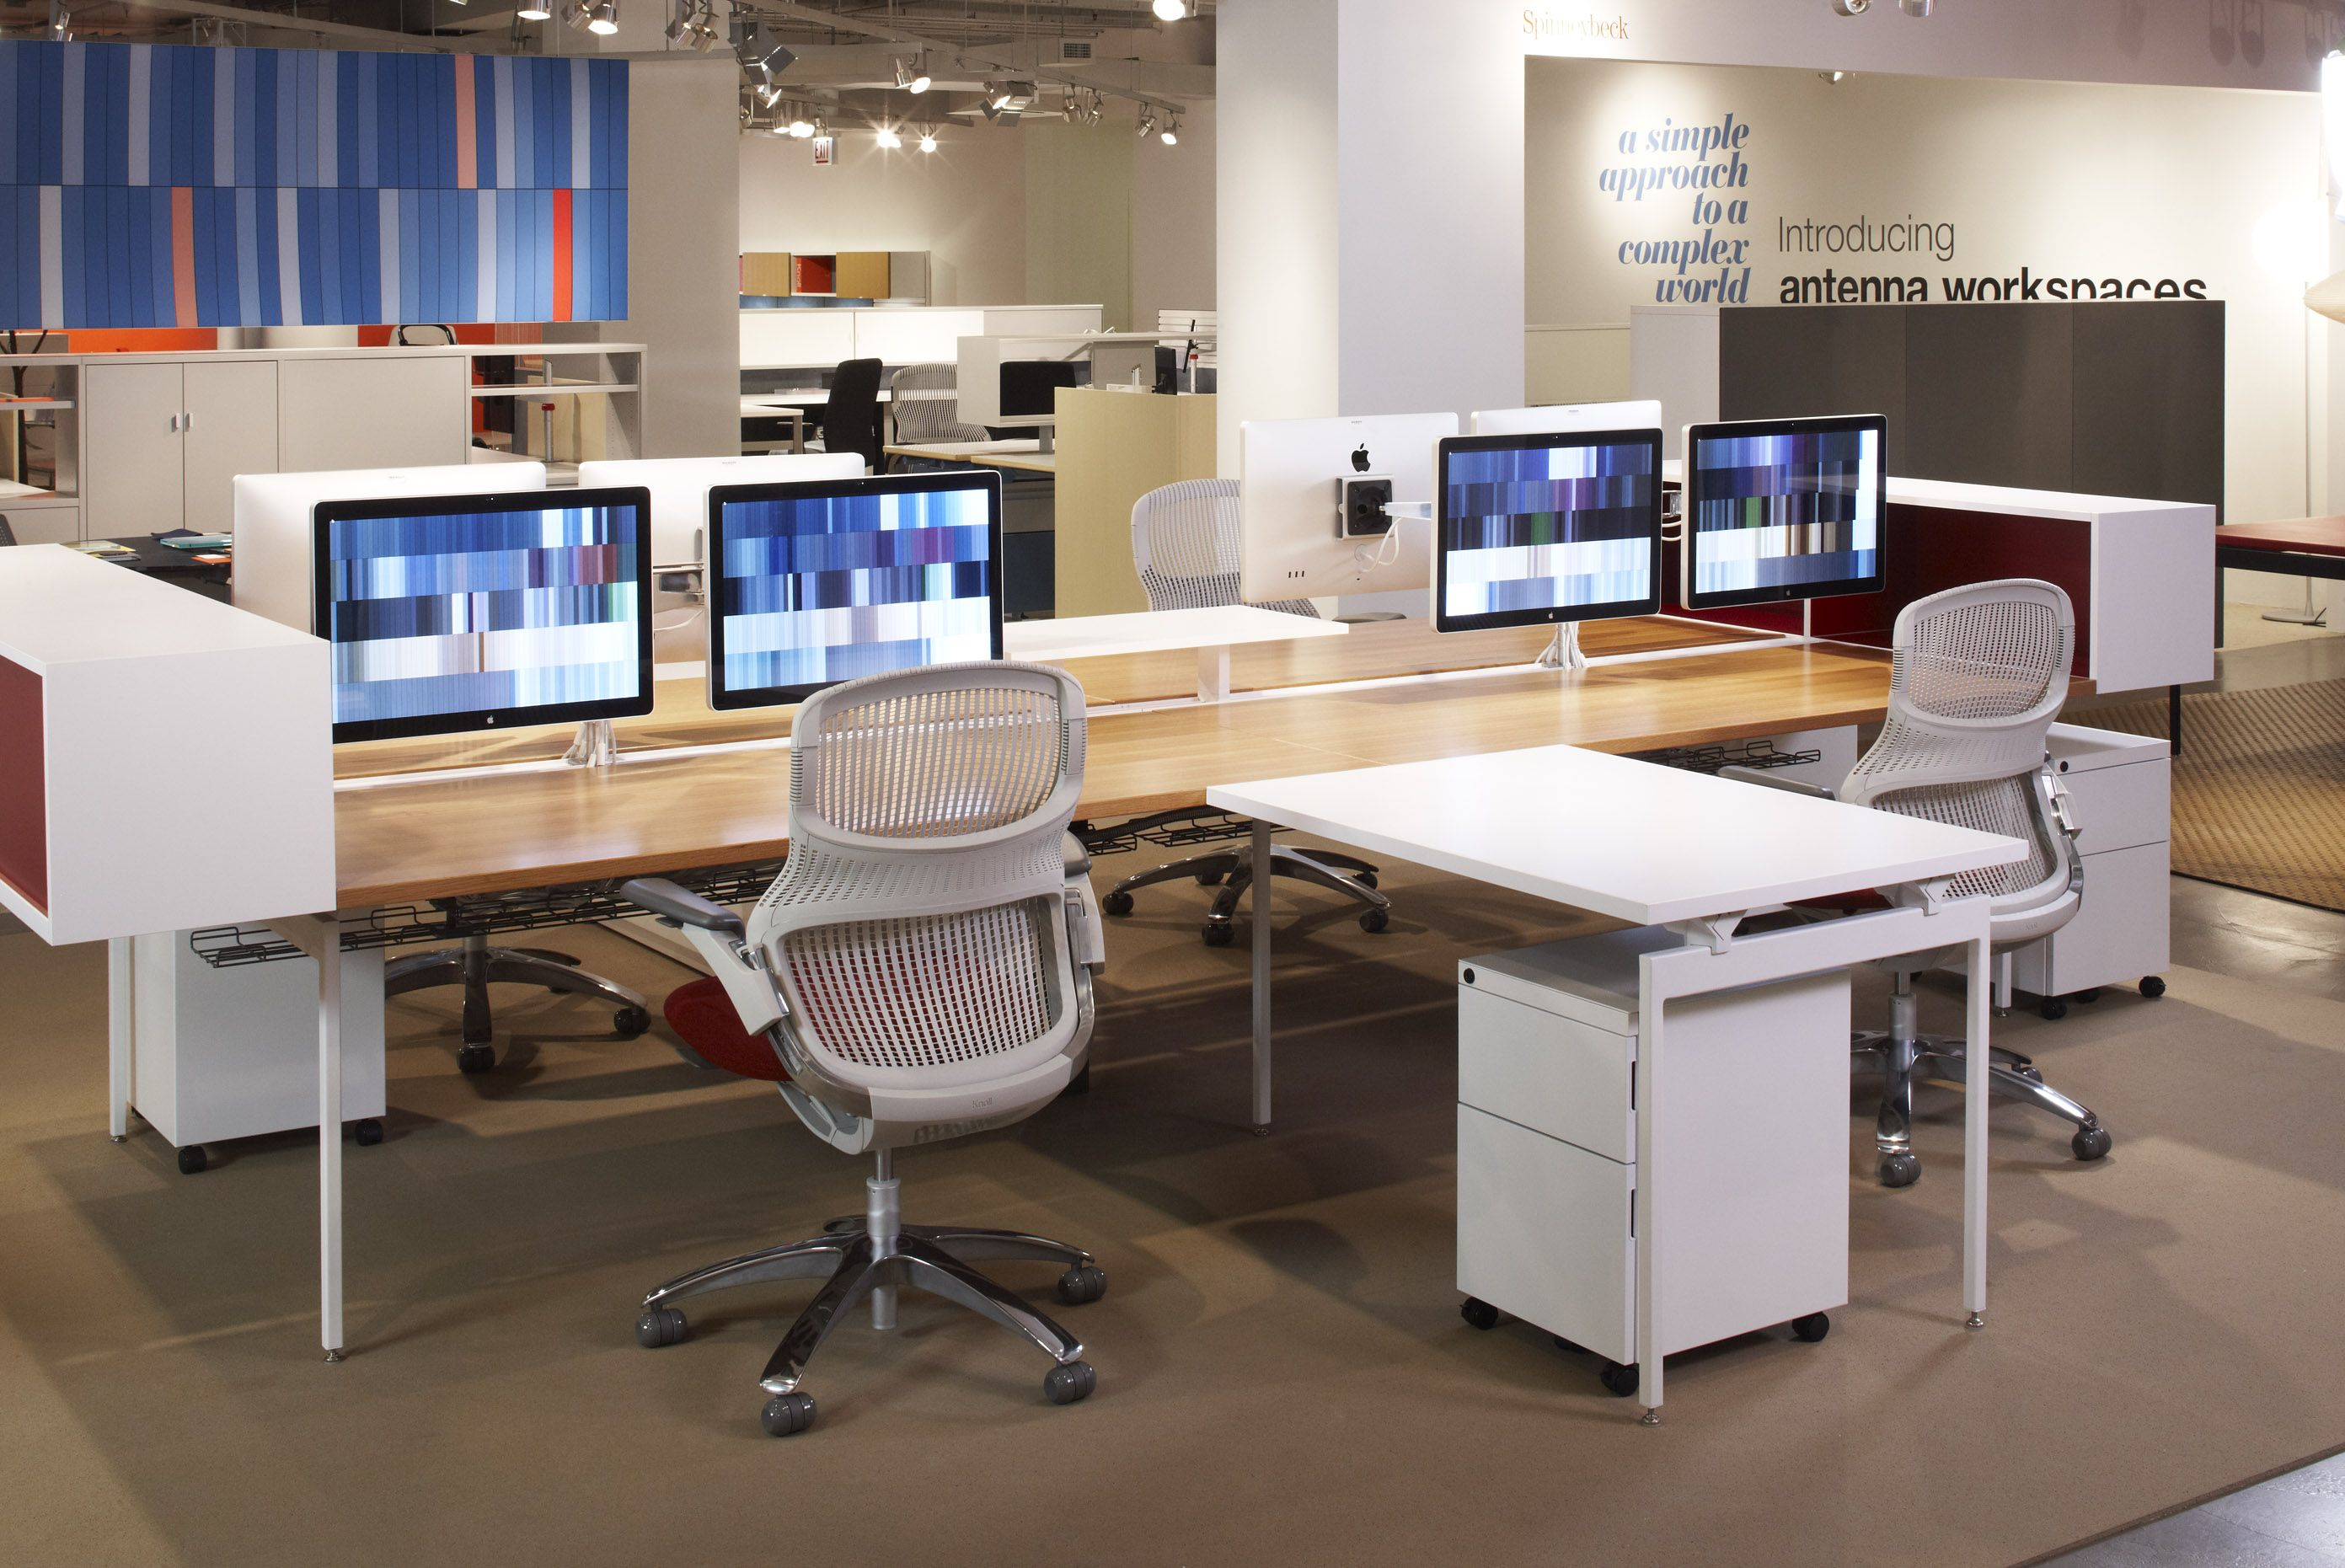 antenna workspaces and generationknoll chairs | knoll